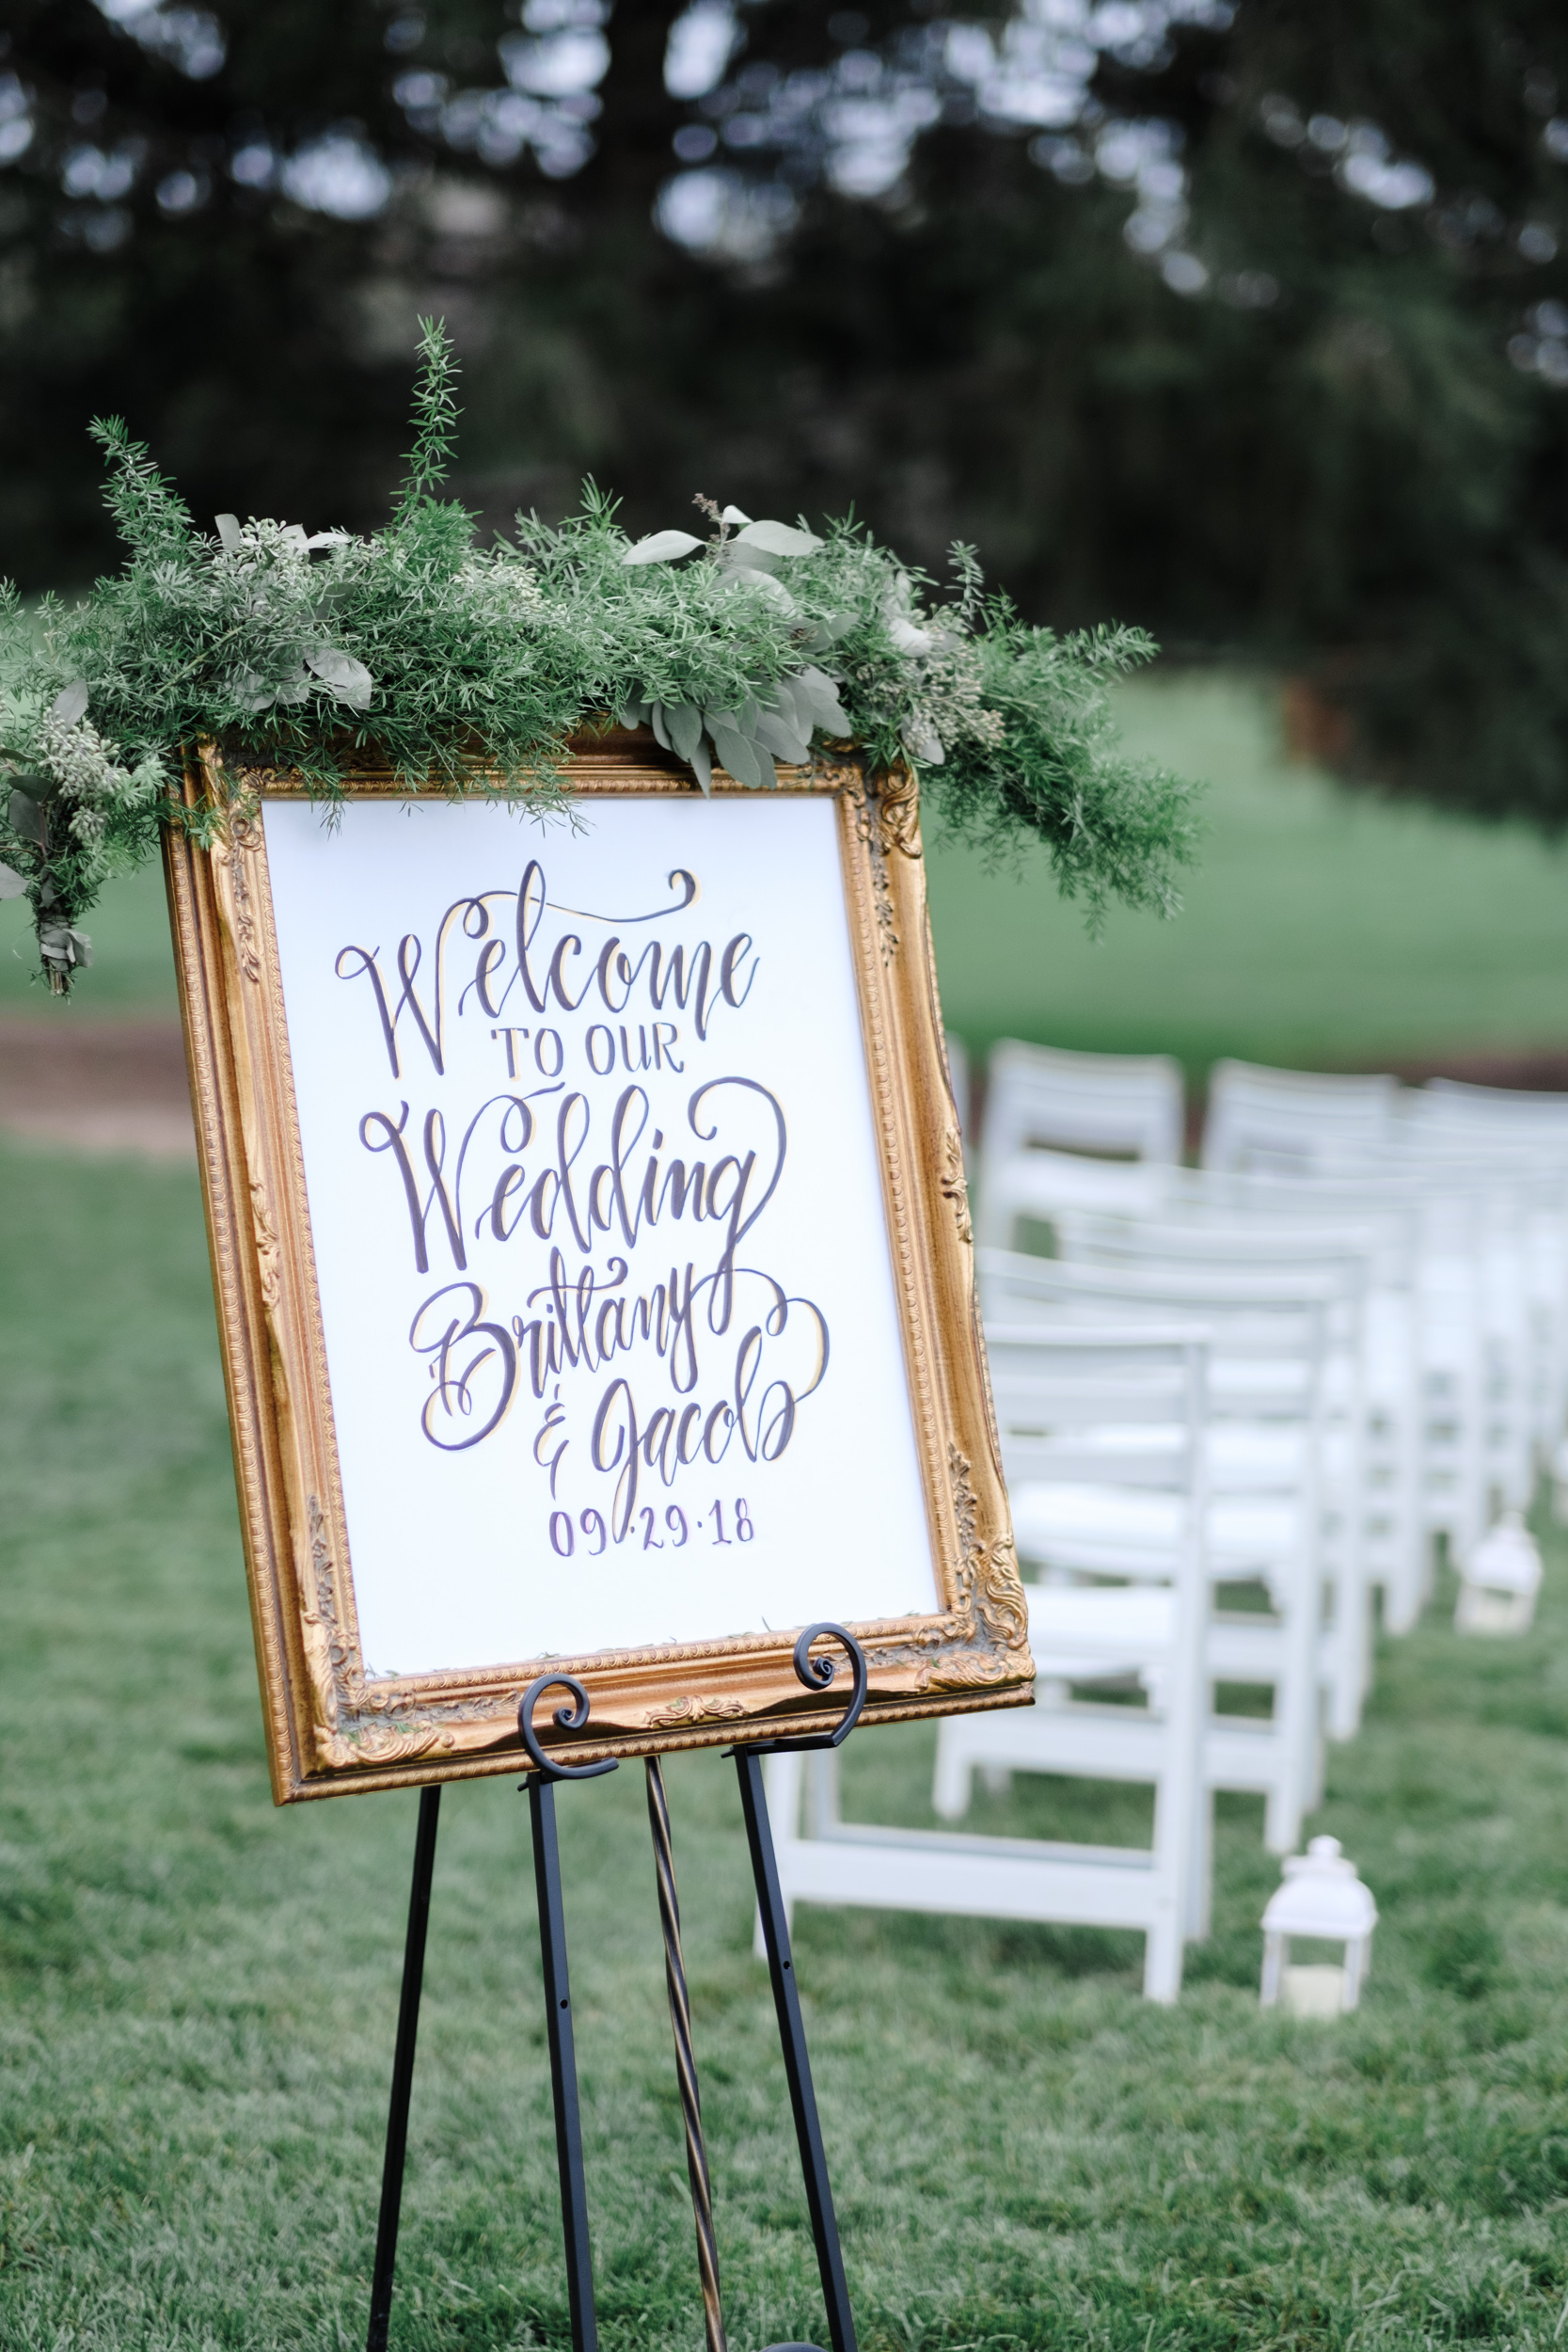 Sign for wedding at Rockford Bank and Trust Pavilion.